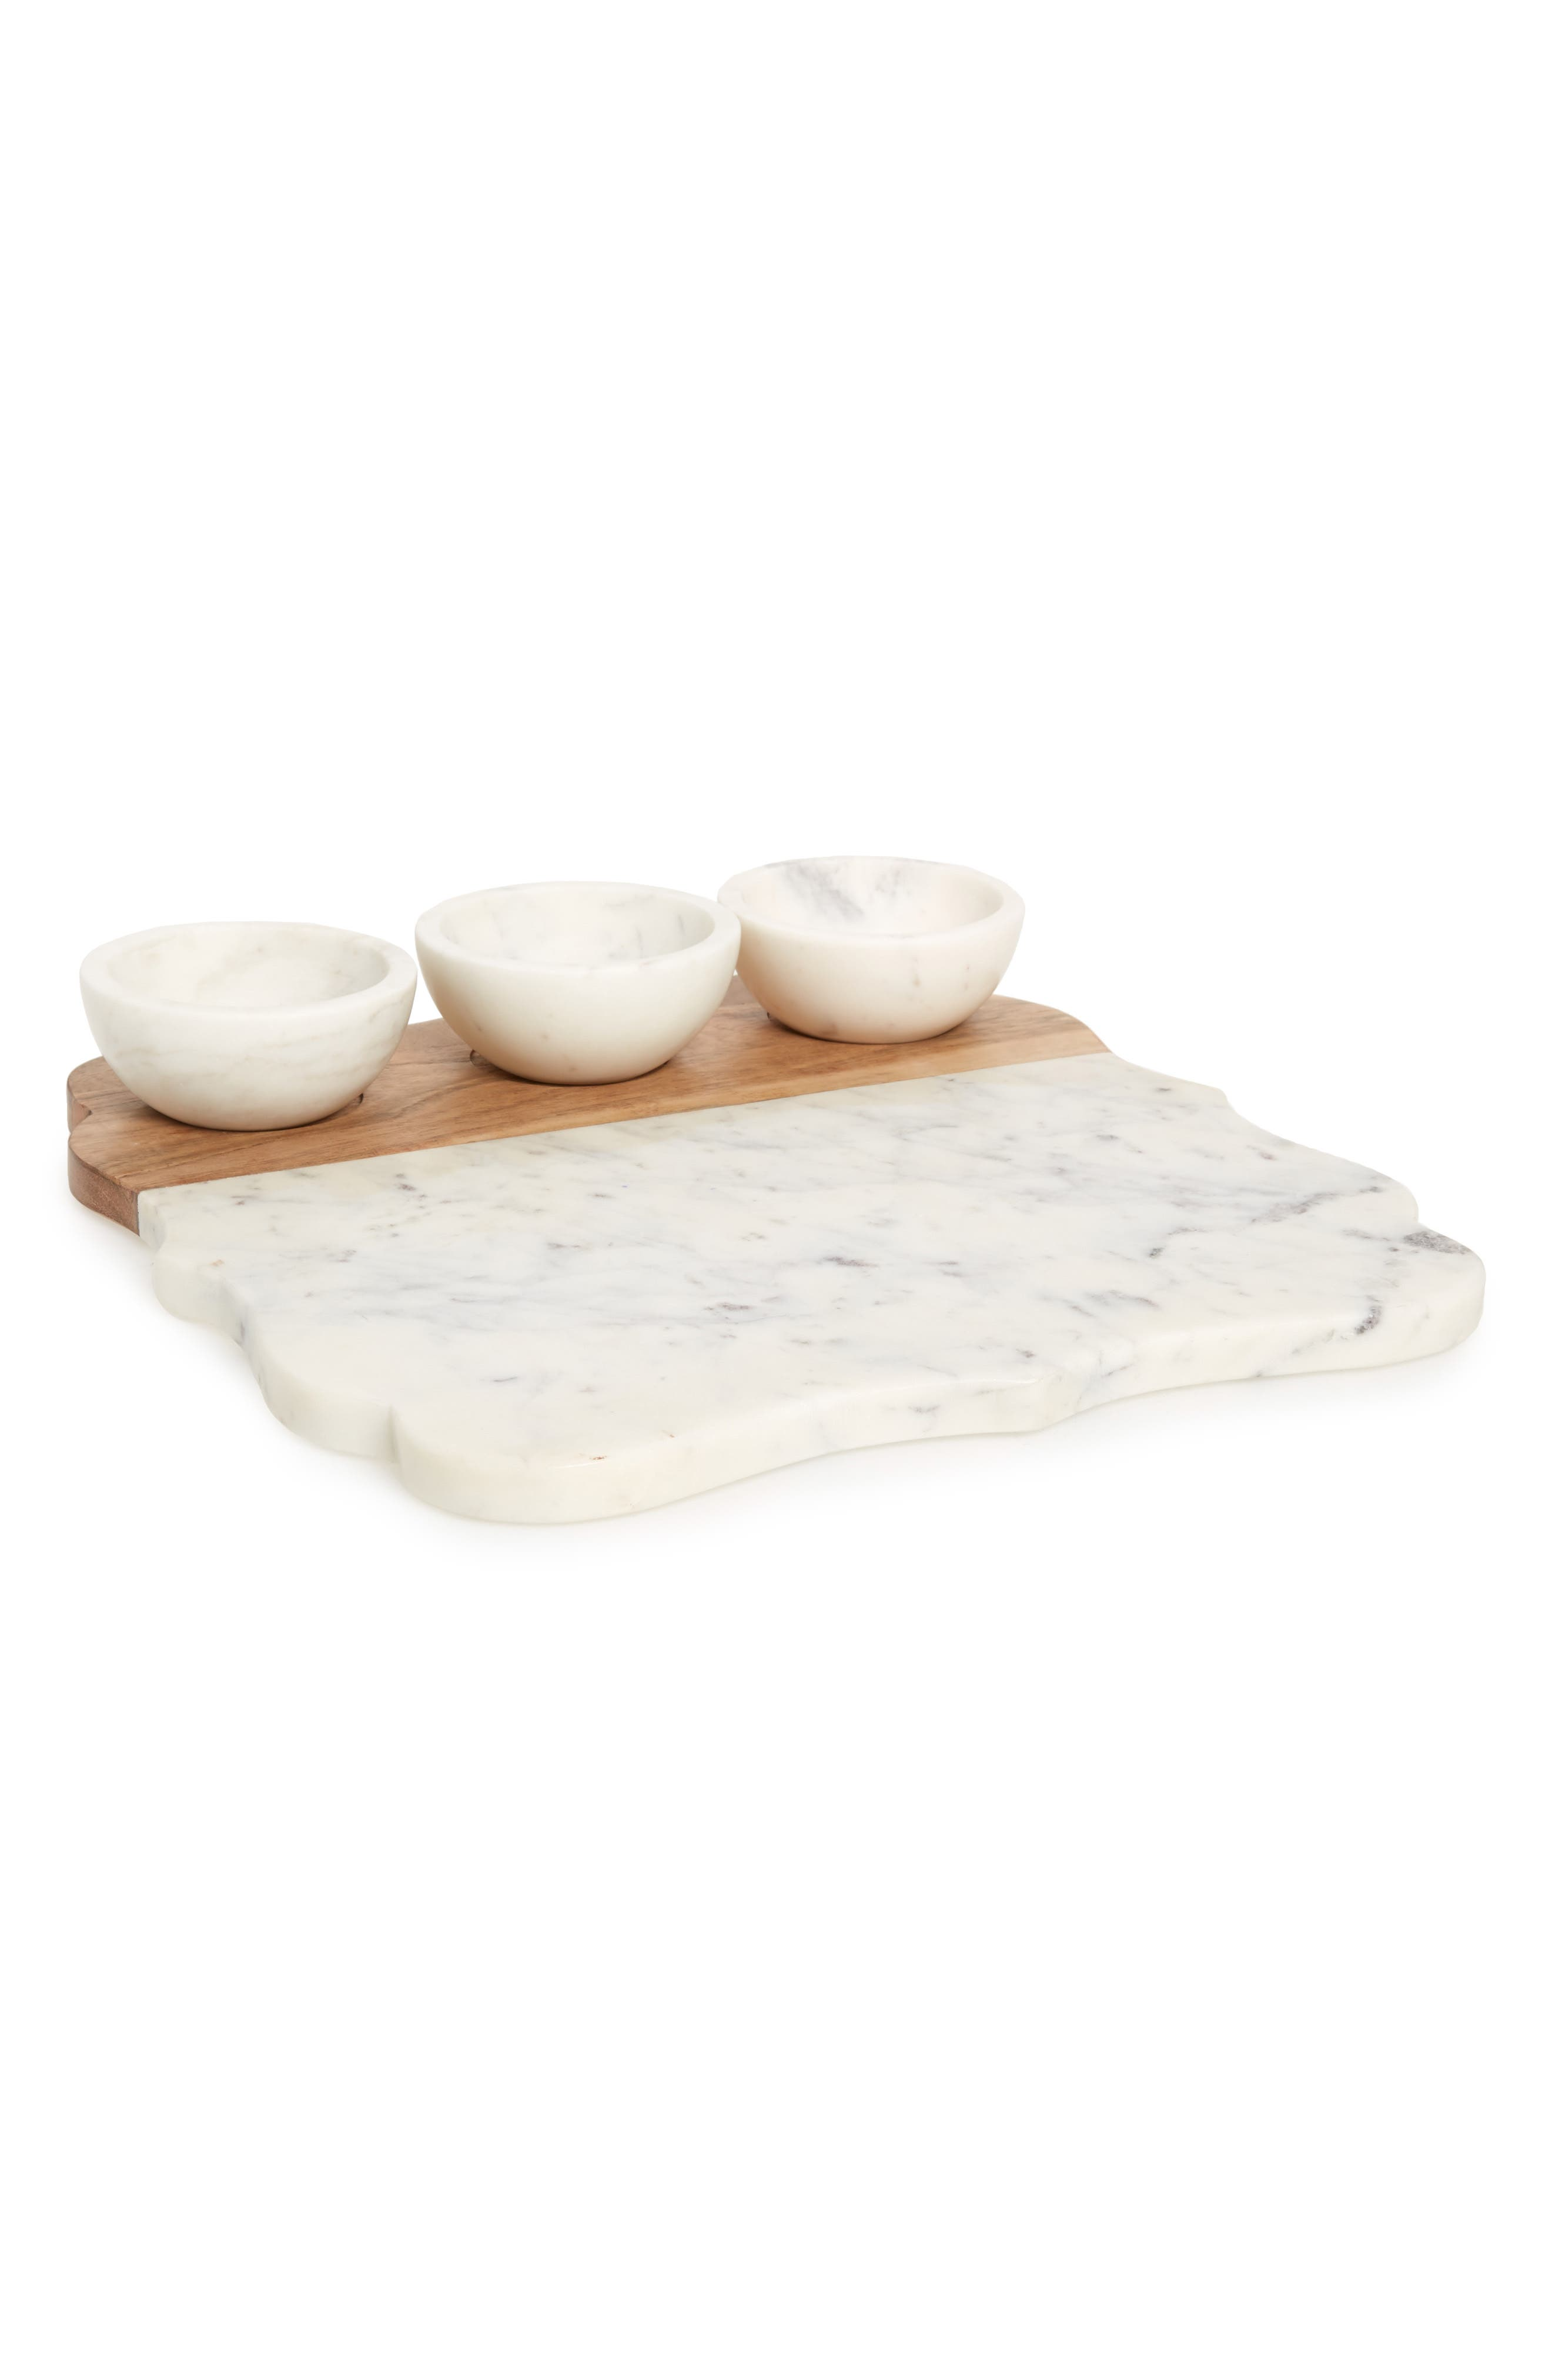 Lavender Marble & Wood Tray & Bowls Set,                             Main thumbnail 1, color,                             WHITE